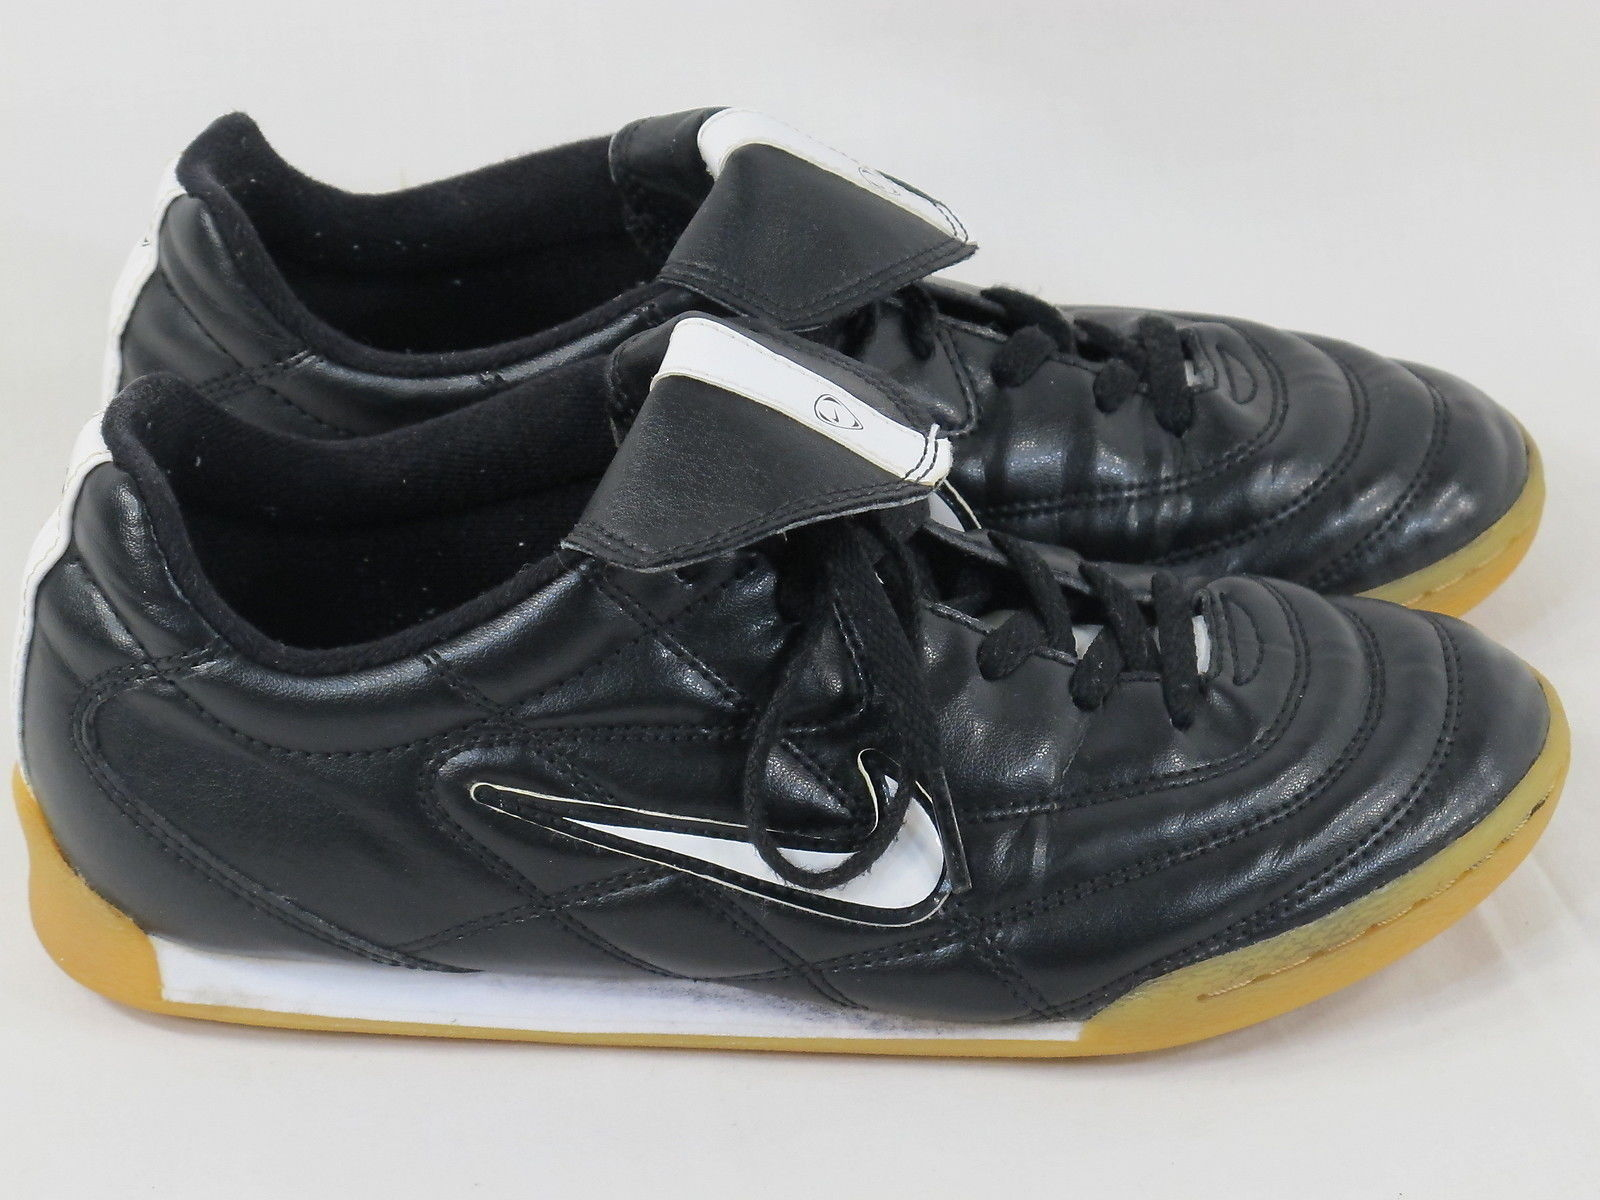 b8bf29471 S l1600. S l1600. Previous. Nike Tiempo 750 Black & White Leather Indoor  Soccer Cleats Boy's Size ...